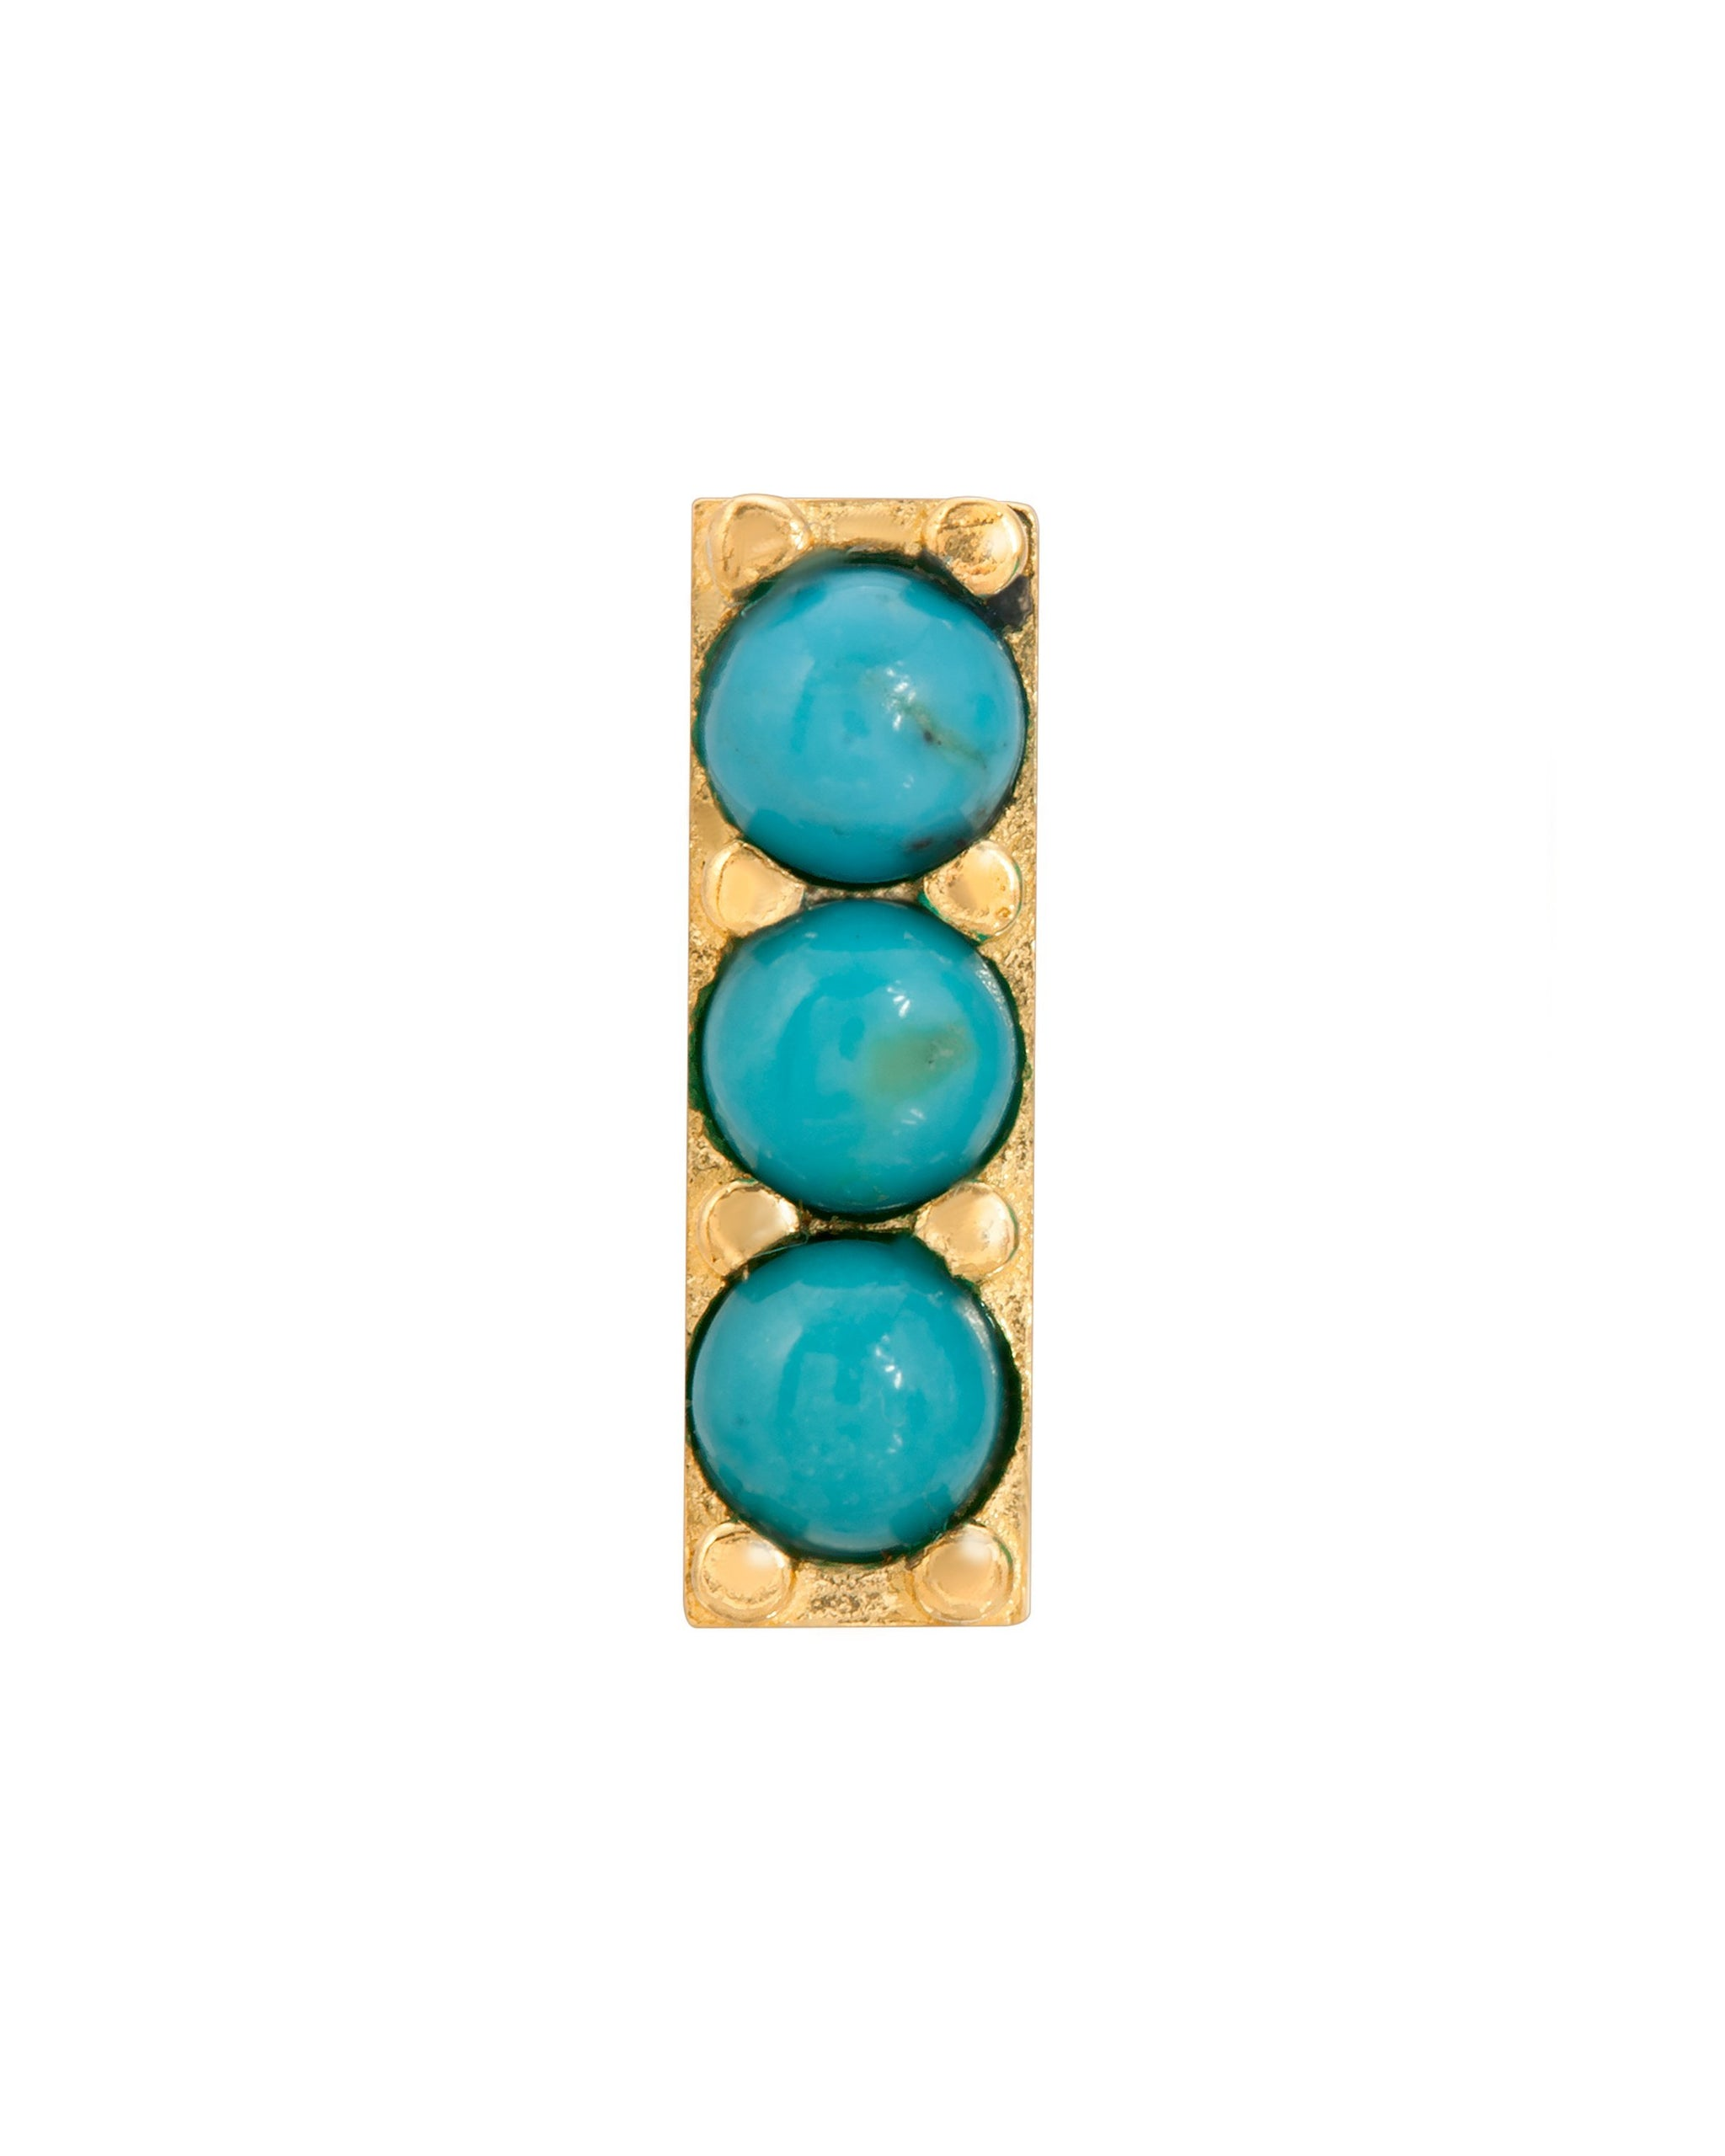 RIVER STUD 11MM - TURQUOISE + TOBACCO